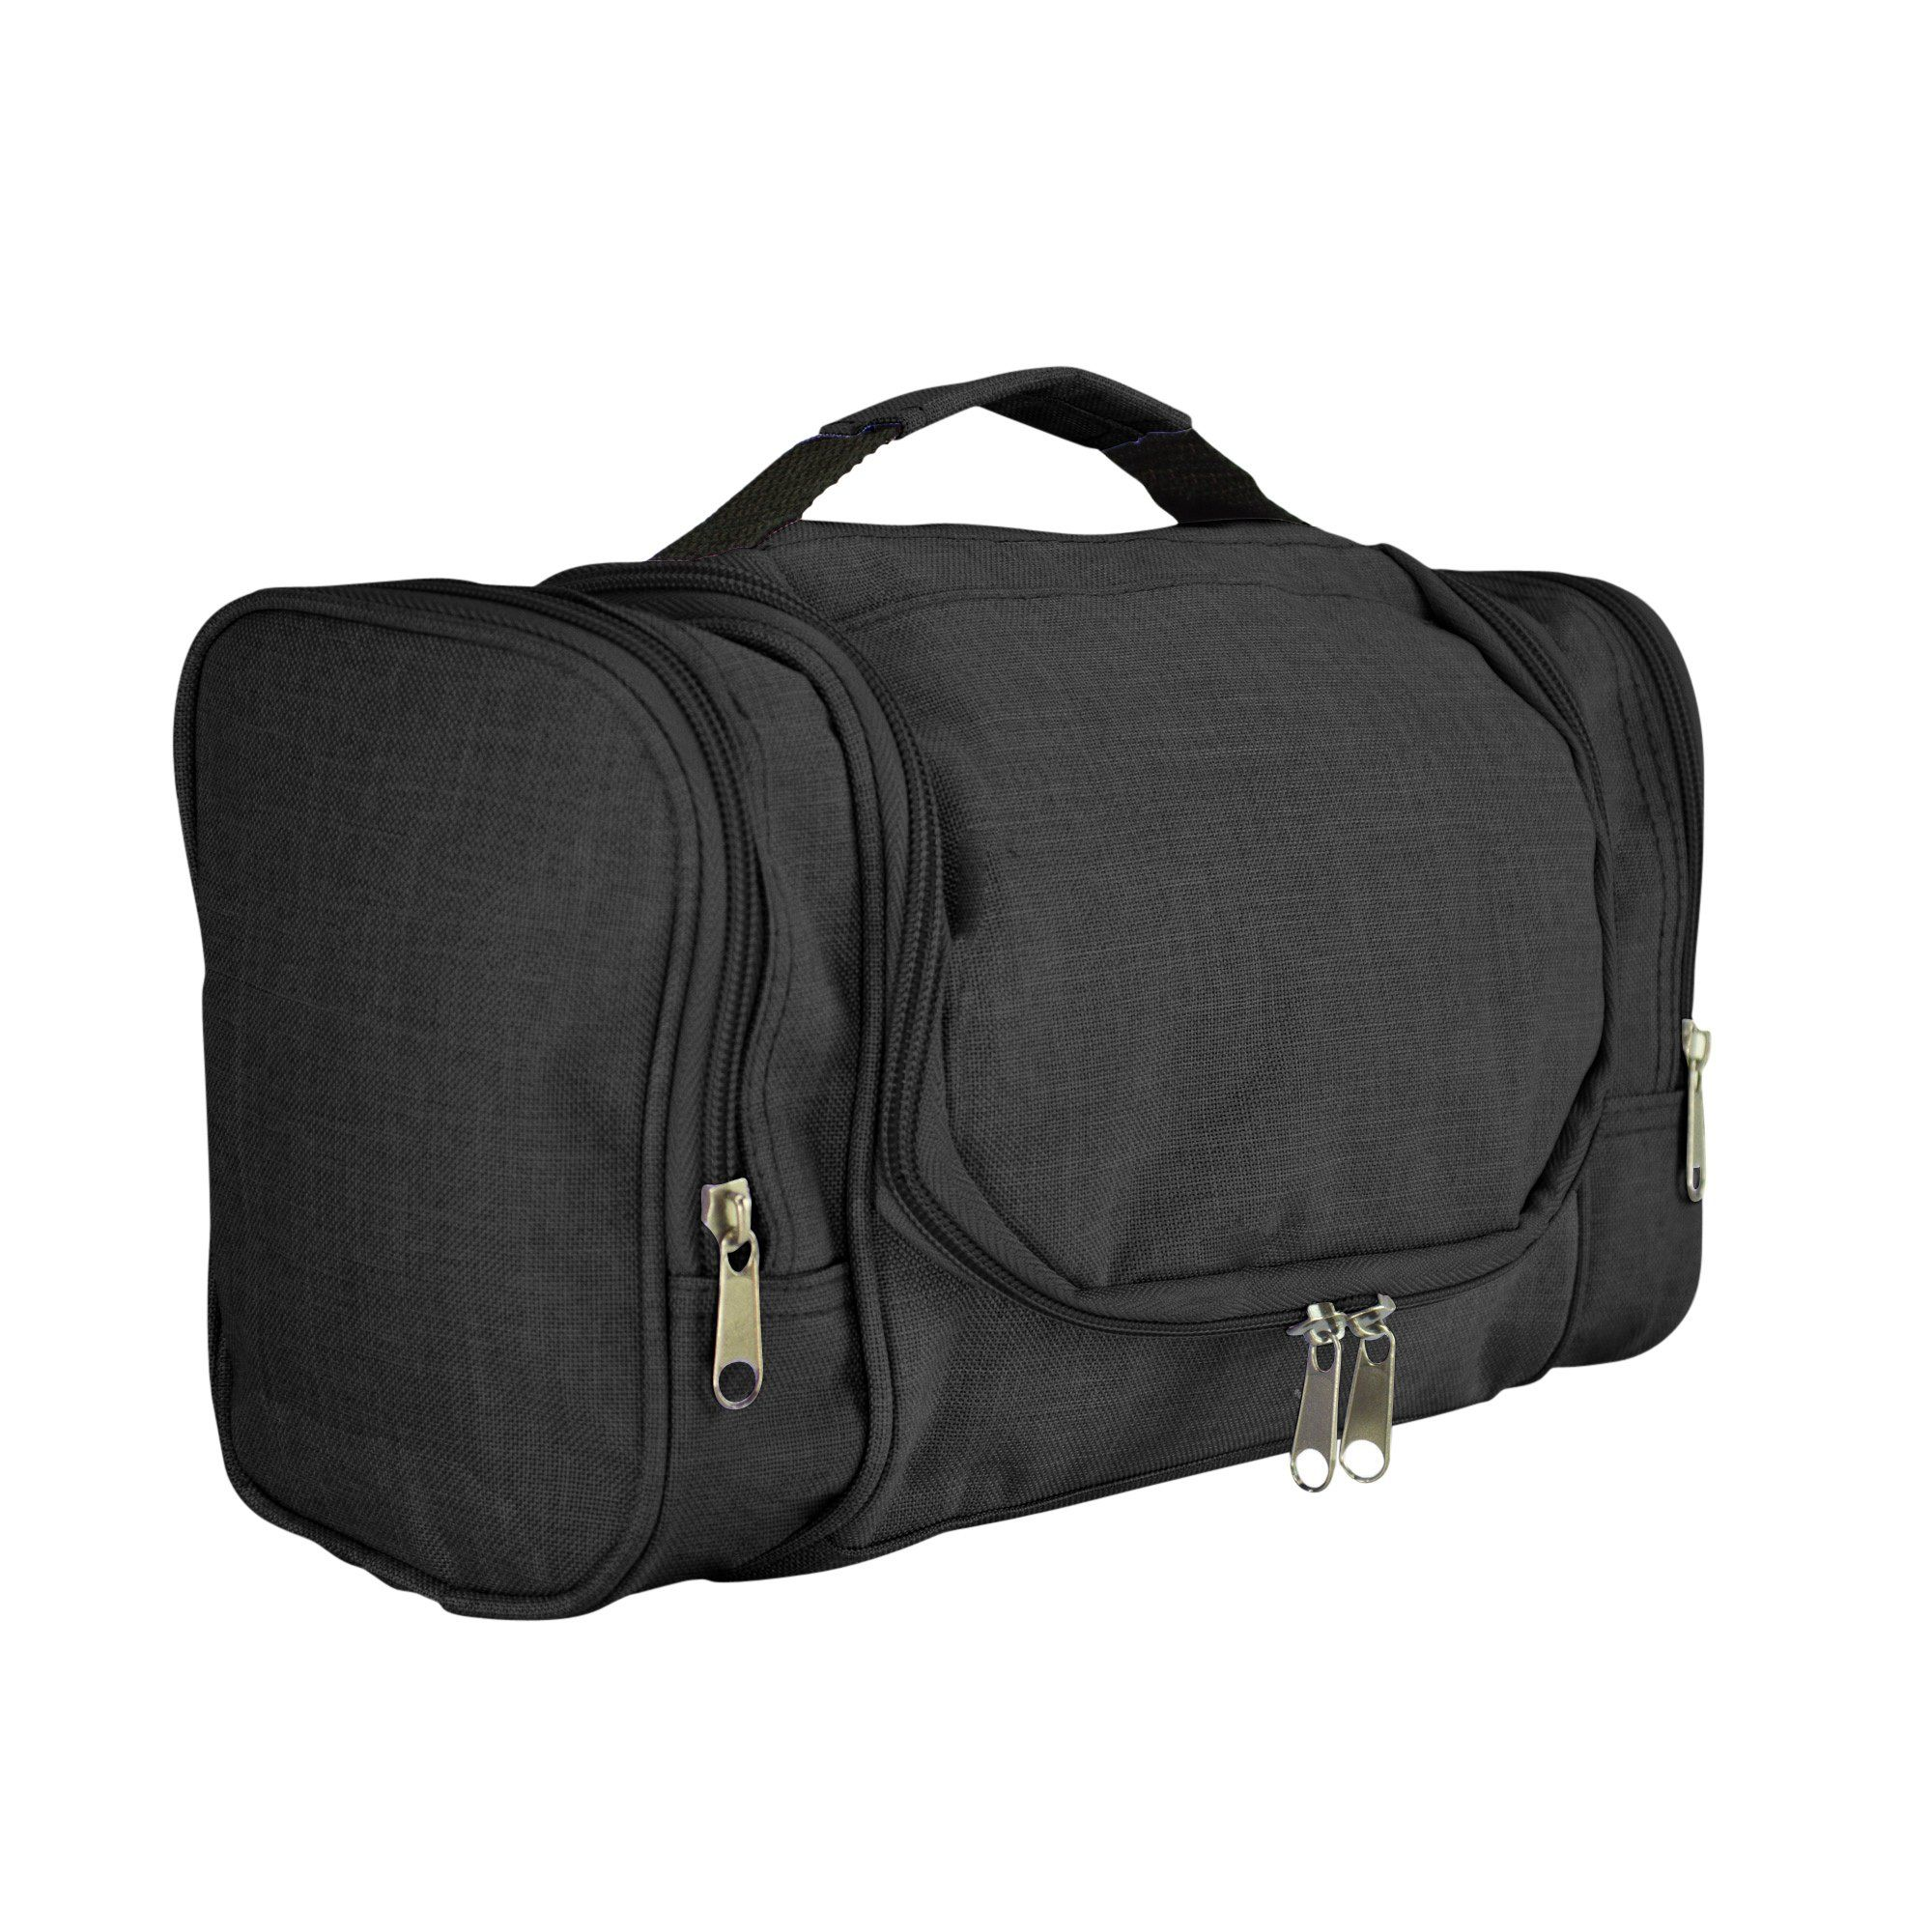 746e69306866 Hanging Travel Toiletry Kit Accessories Bag | Products | Travel ...